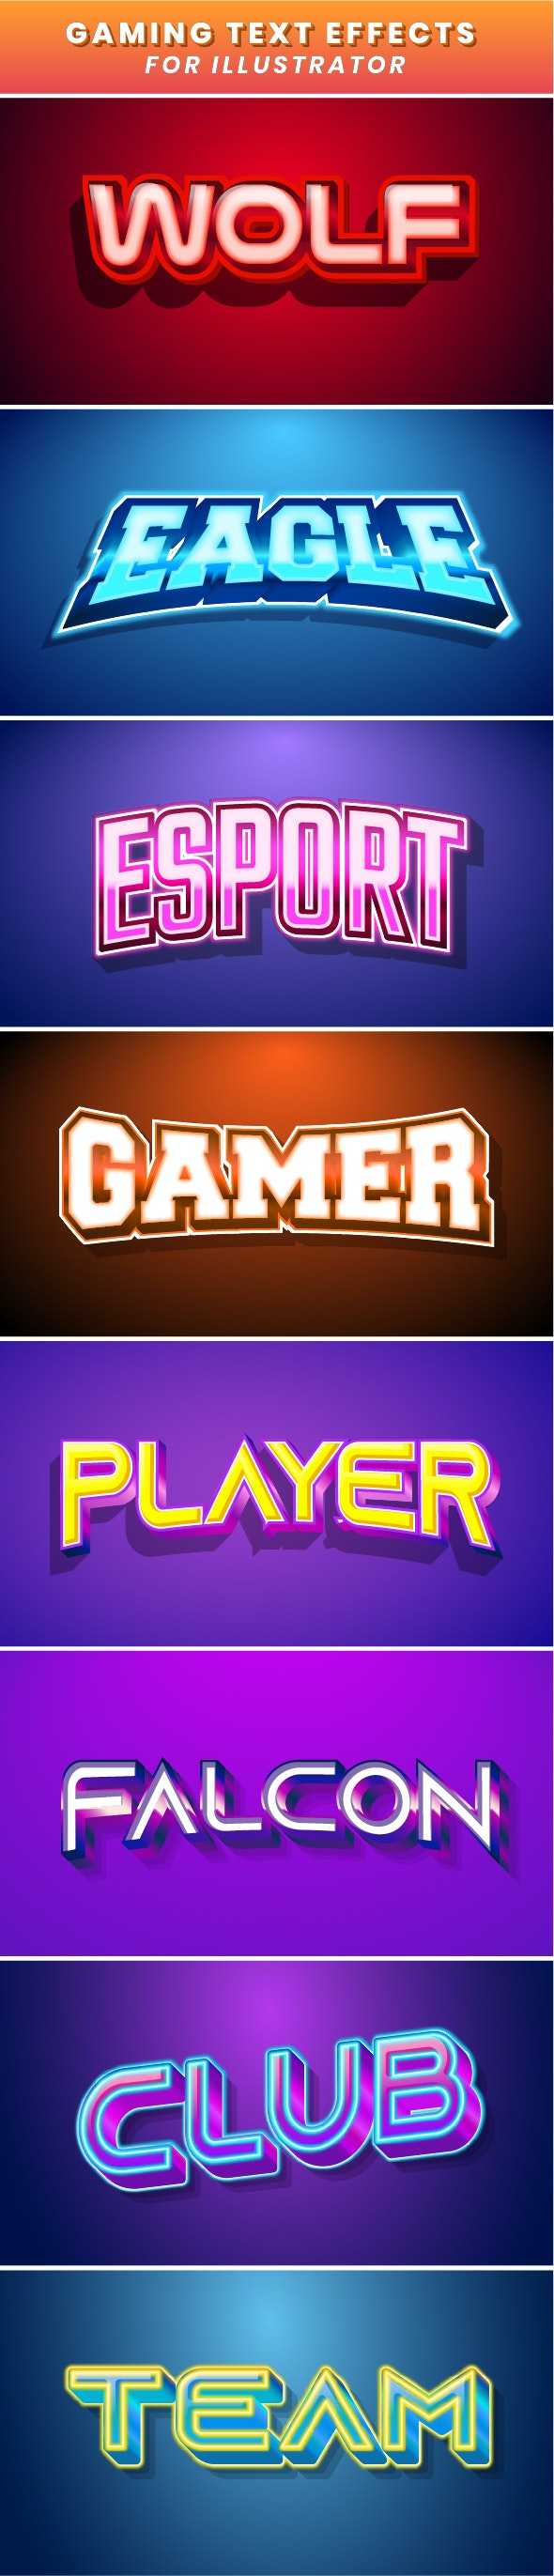 Esport Gaming Text Effect - Styles Illustrator